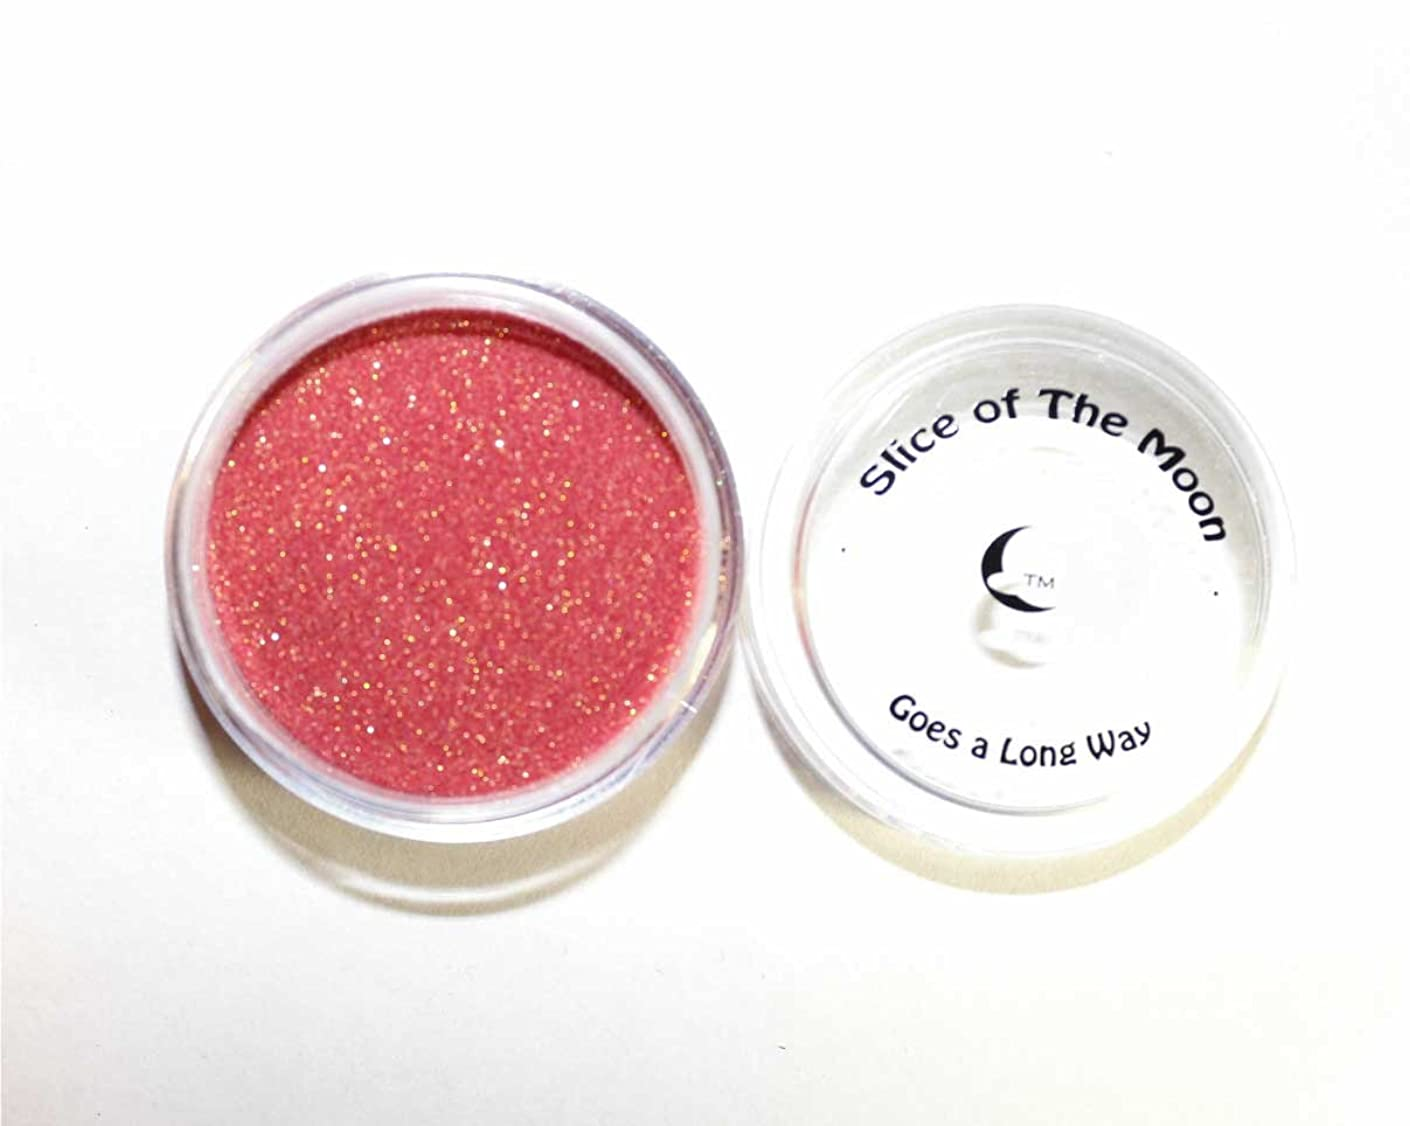 Slice Of The Moon: Iris Gold Red Crystal Non Solvent Resistant Glitter Powder 20g - Cosmetic Grade For Lipstick Lip gloss Bath Bombs Epoxy Resin Face Blush Powder Eye pencil Dye Pigments Candle Making